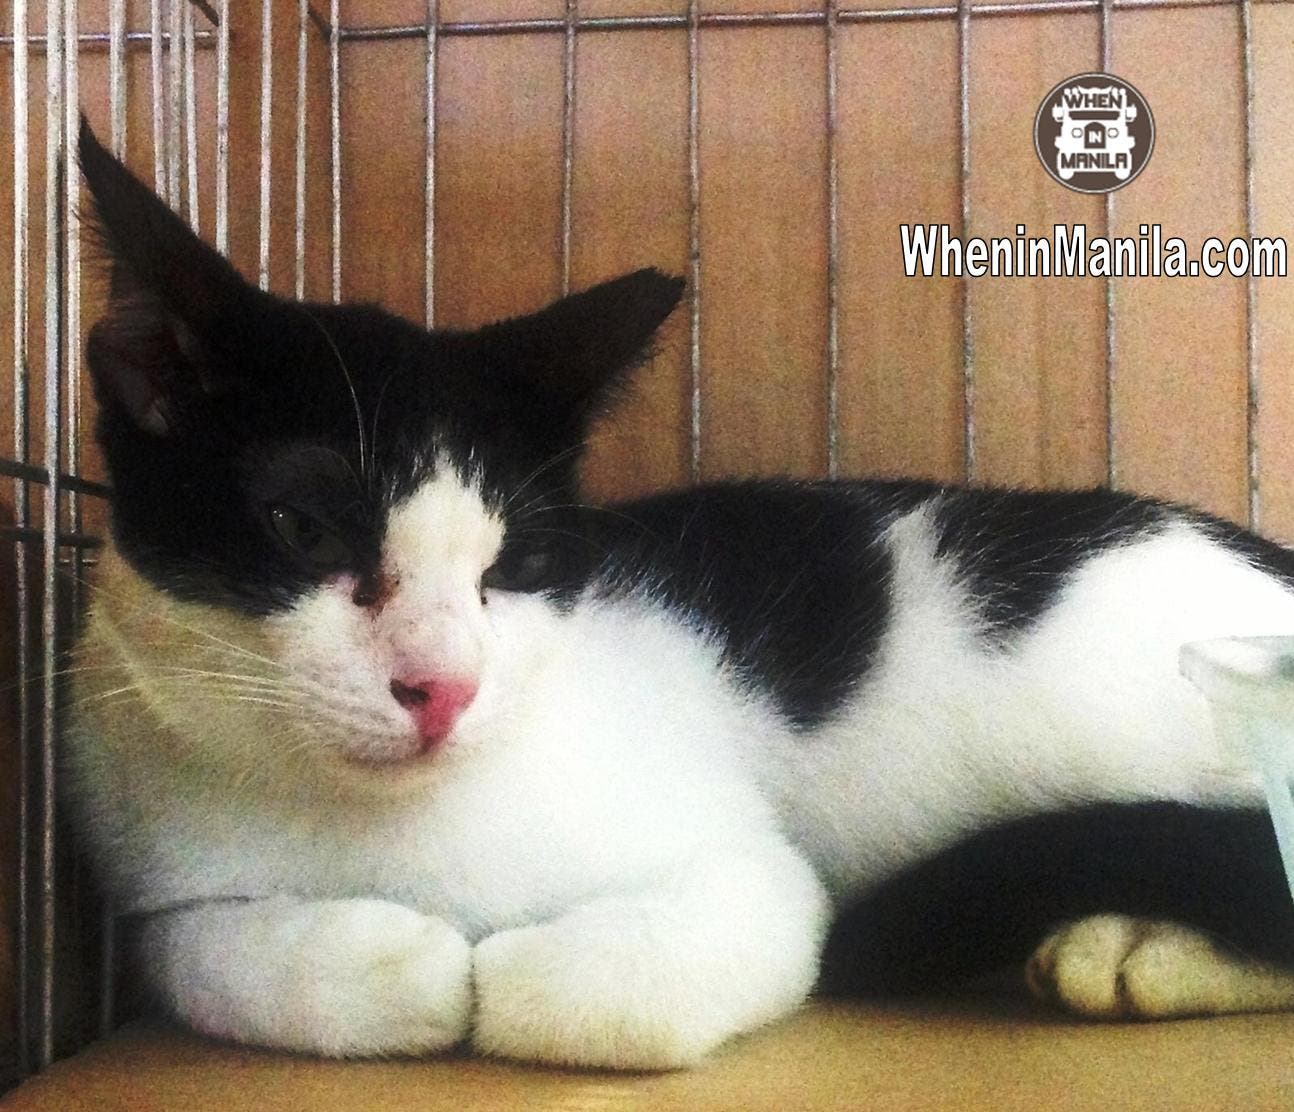 Animal Rescue and Welfare in the Philippines - Bleaky - Rescued Cat for Adoption